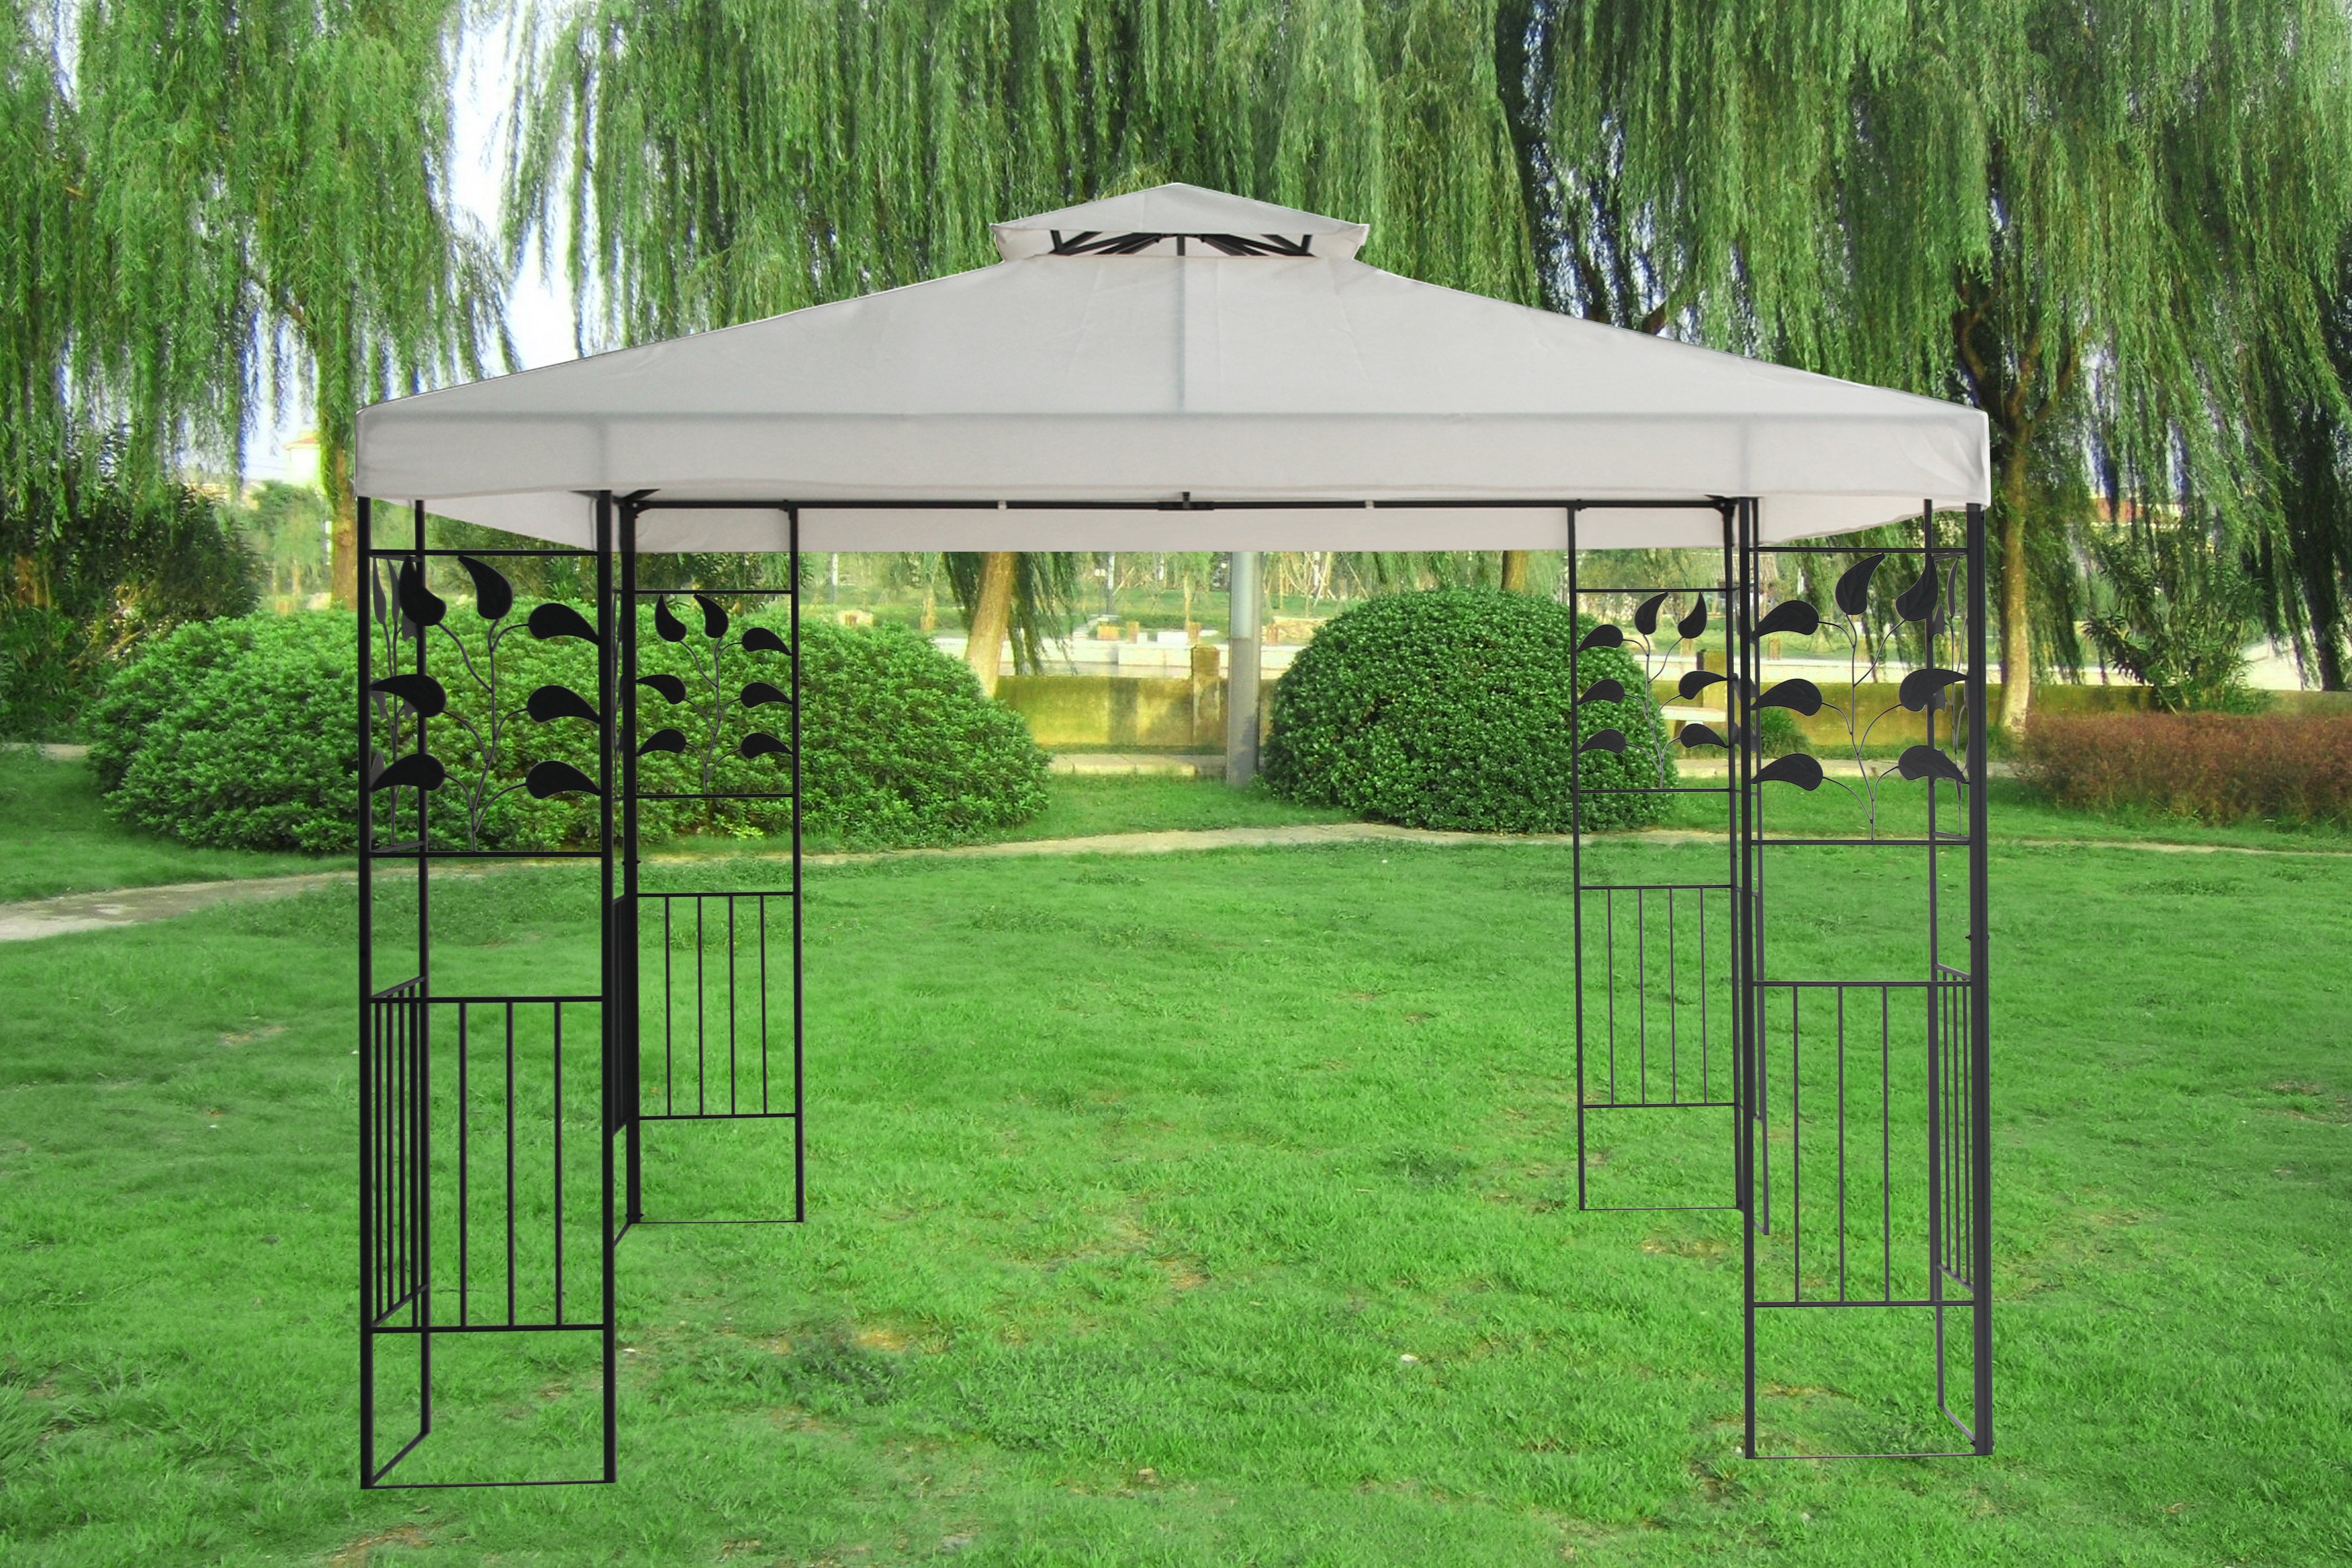 canopy camping chair graco winslet high 3x3m pavilion metal gazebo awning sun shade shelter marquee greenbay | ebay